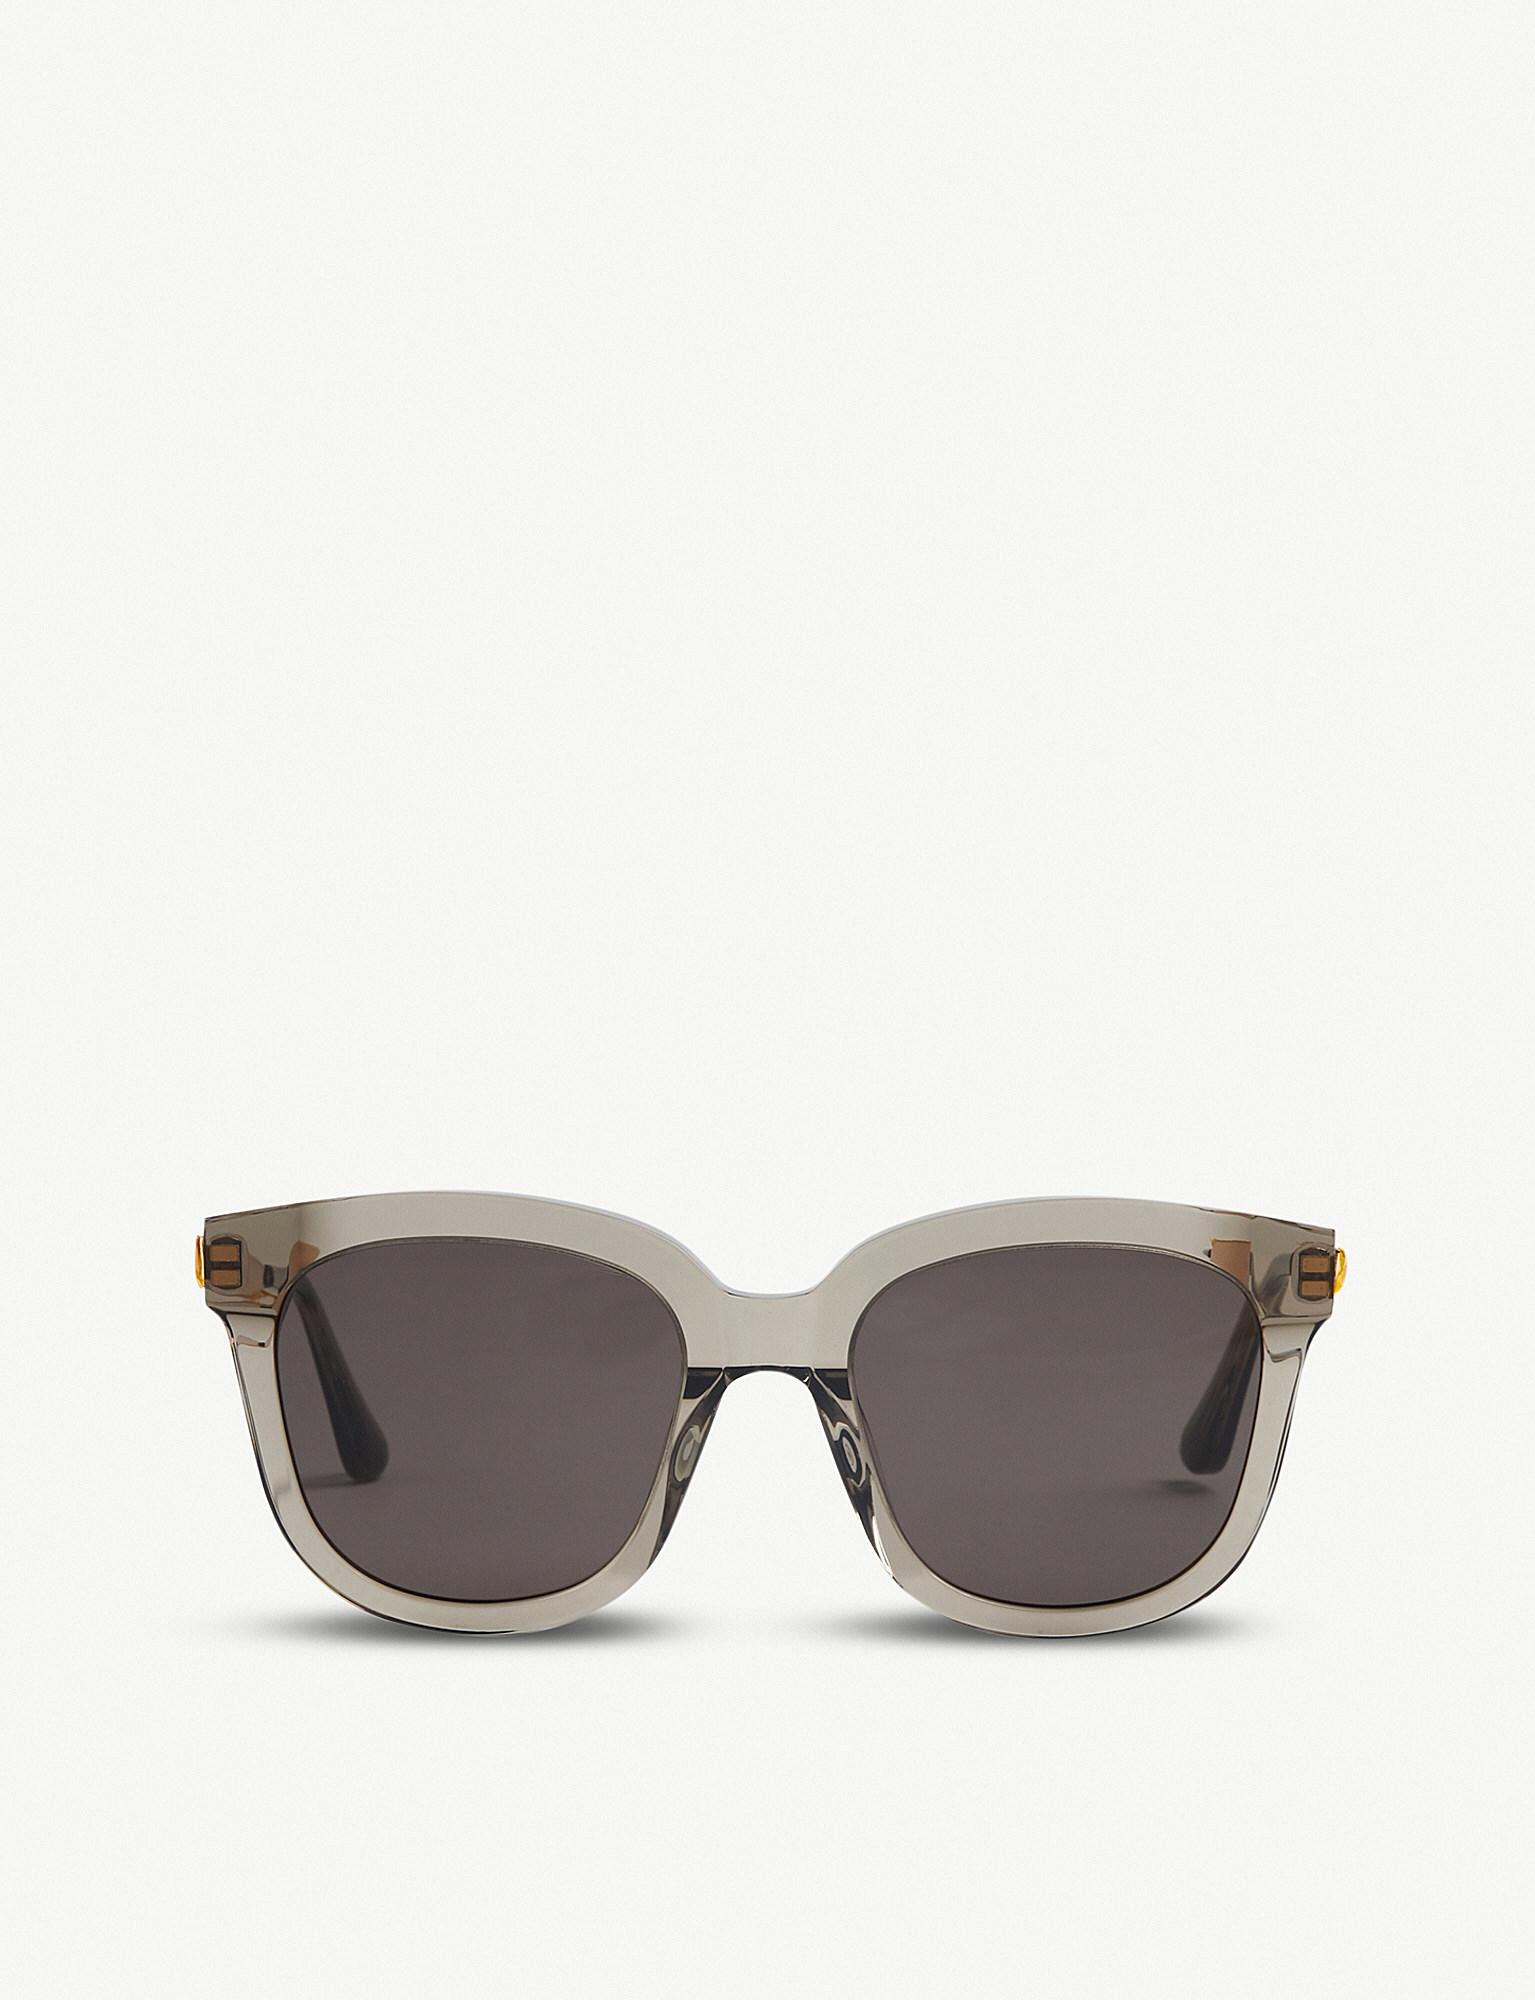 f103f2a52a Lyst - Gentle Monster Absente Acetate Sunglasses in Gray